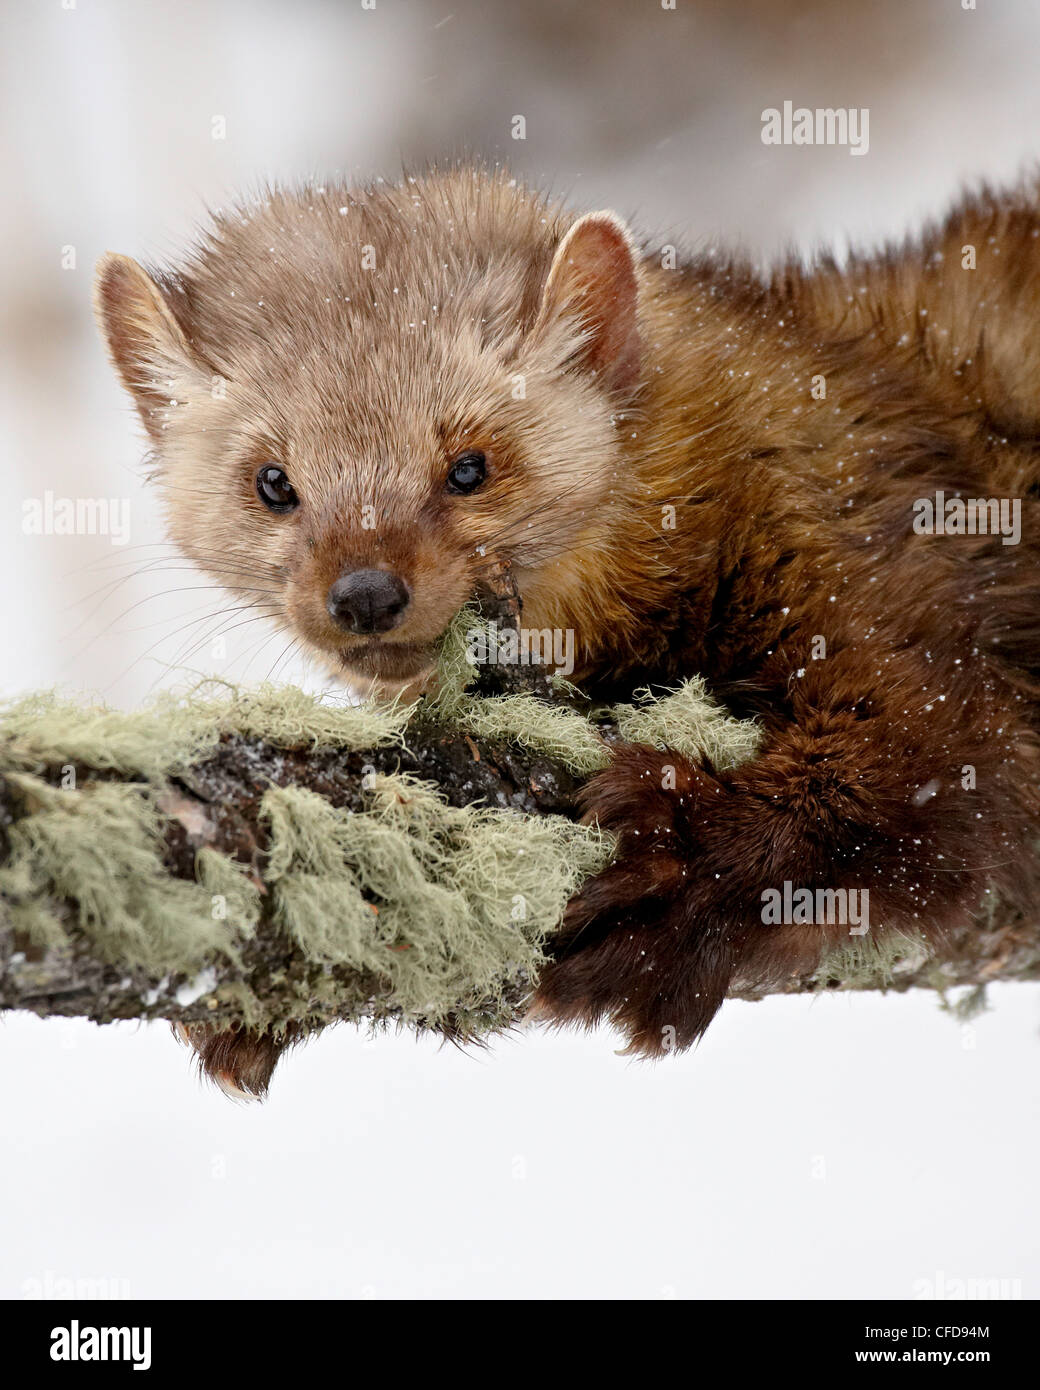 Captive fisher (Martes pennanti) in a tree in the snow, near Bozeman, Montana, United States of America, - Stock Image